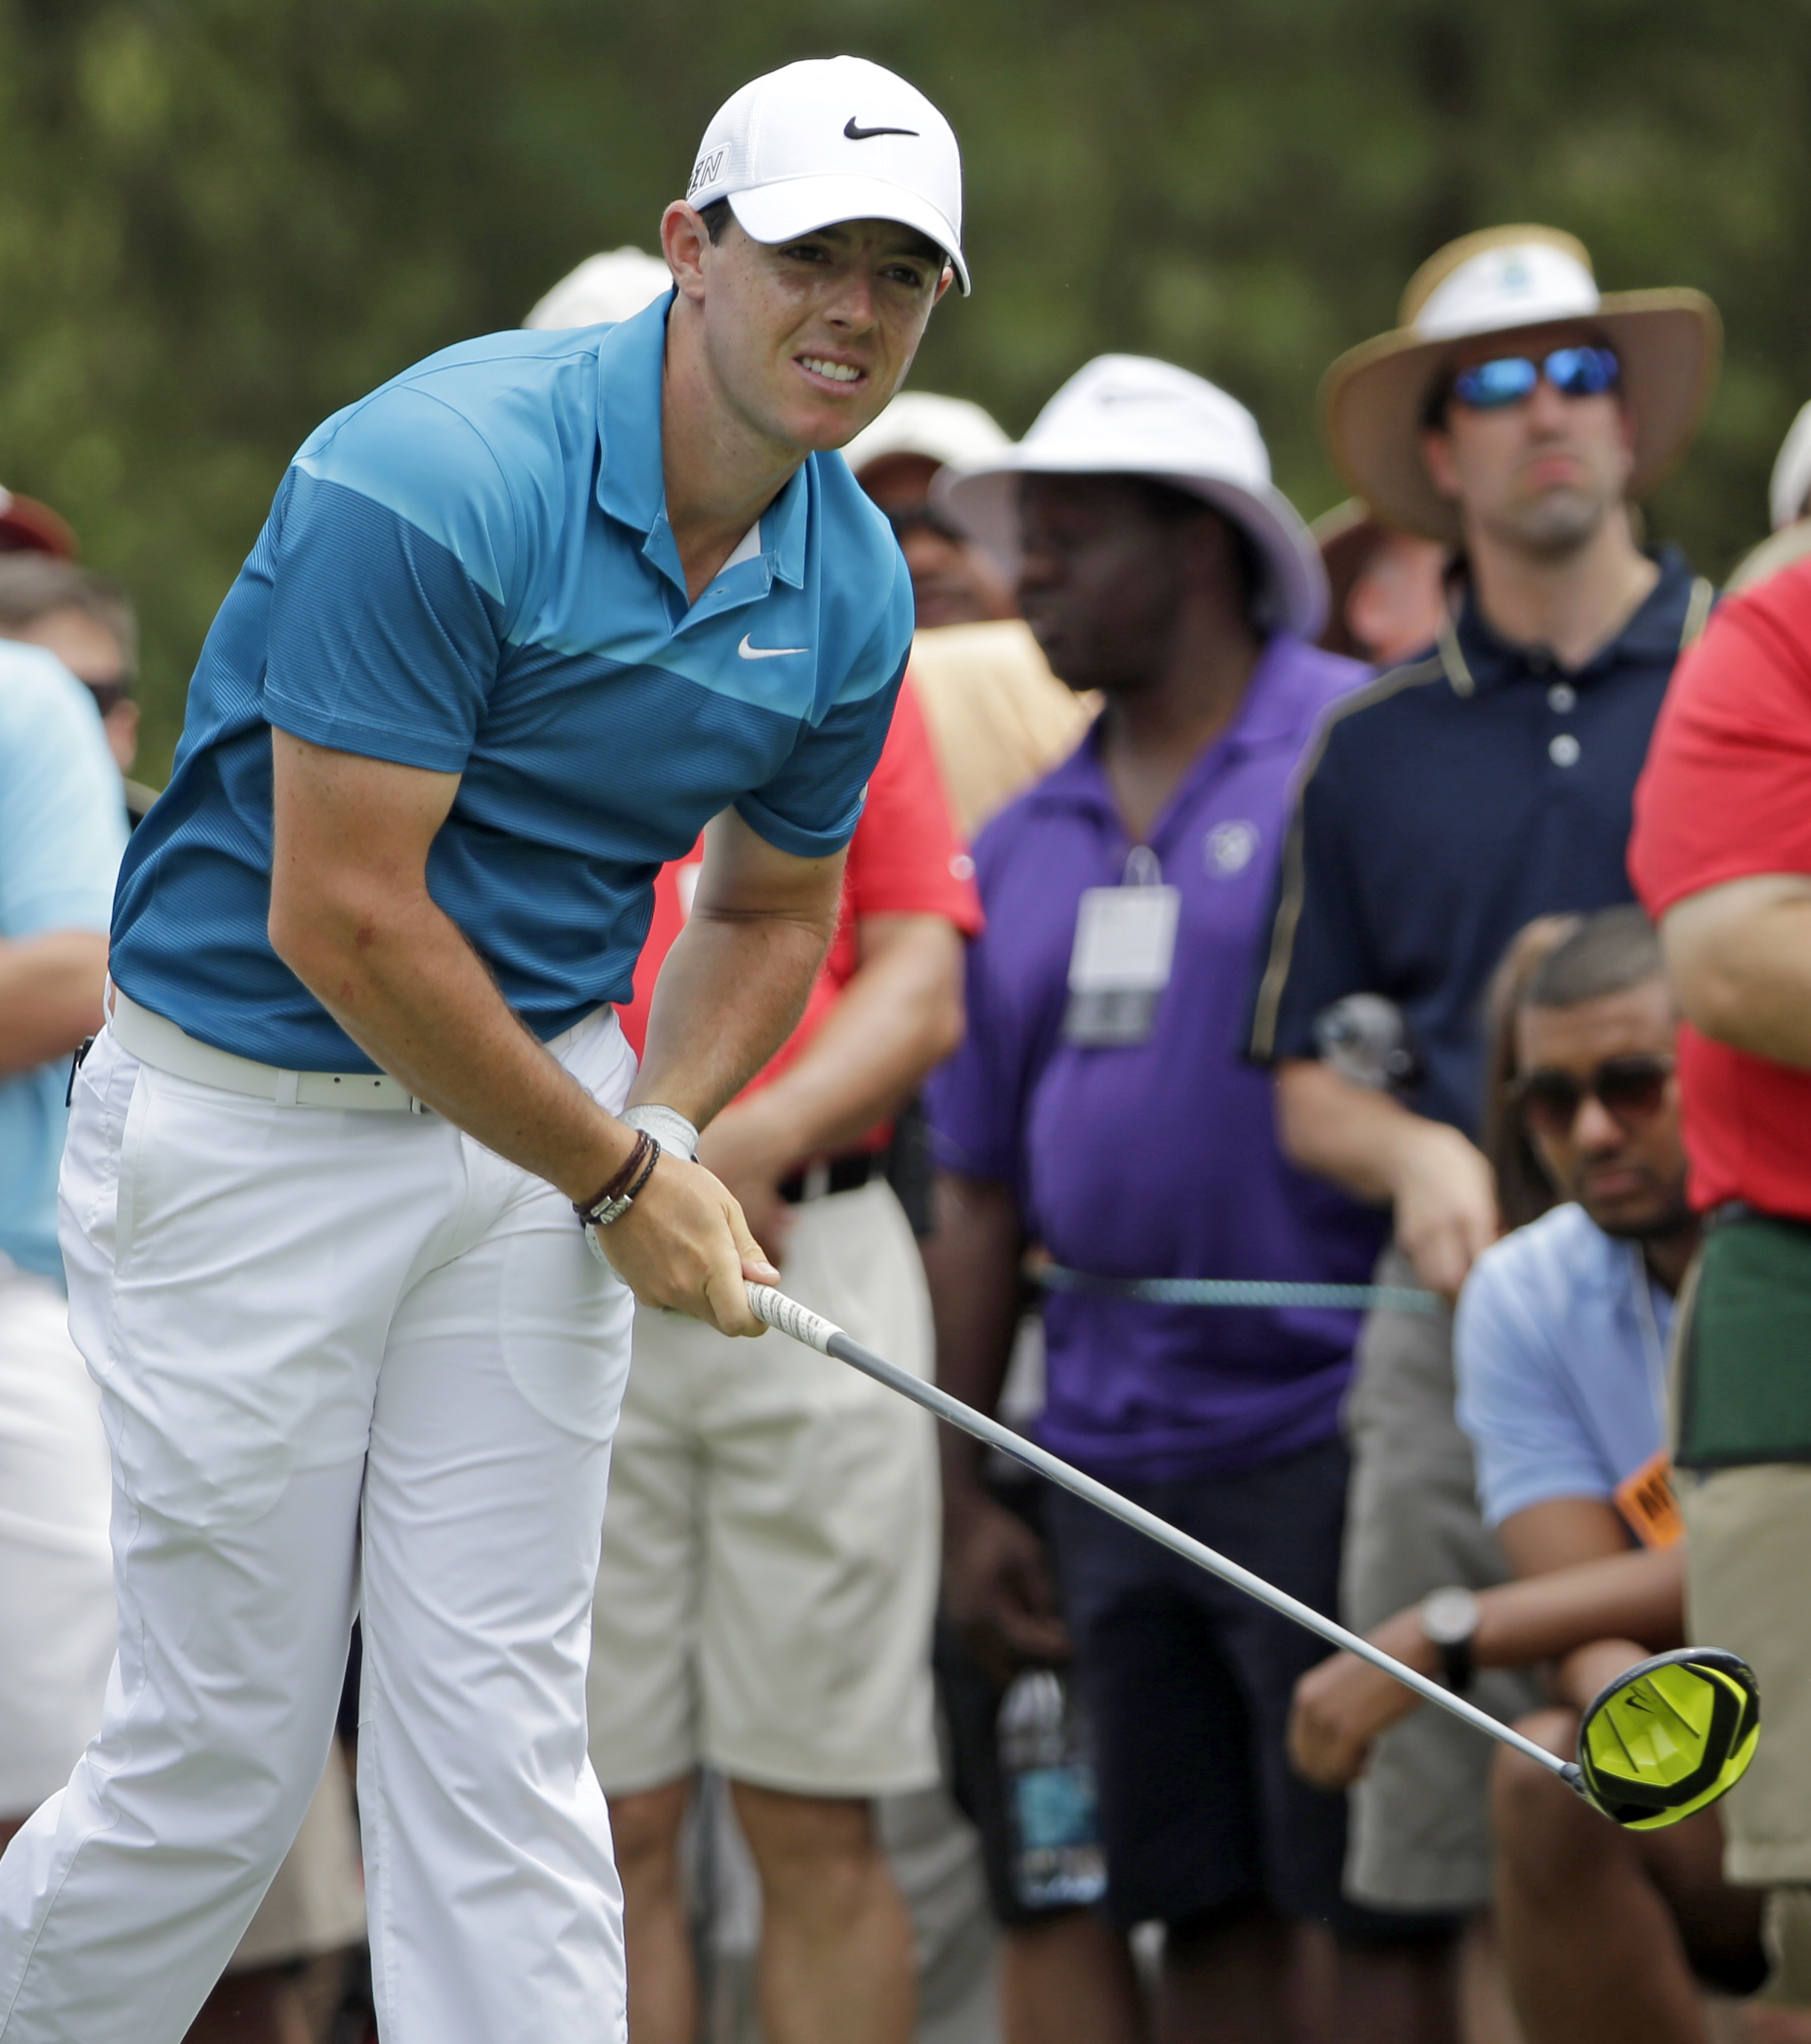 Rory McIlroy, of Northern Ireland, watches his tee shot on the fourth hole during the final round of the Wells Fargo Championship golf tournament at Quail Hollow Club in Charlotte, N.C., Sunday, May 17, 2015. (AP Photo/Chuck Burton)